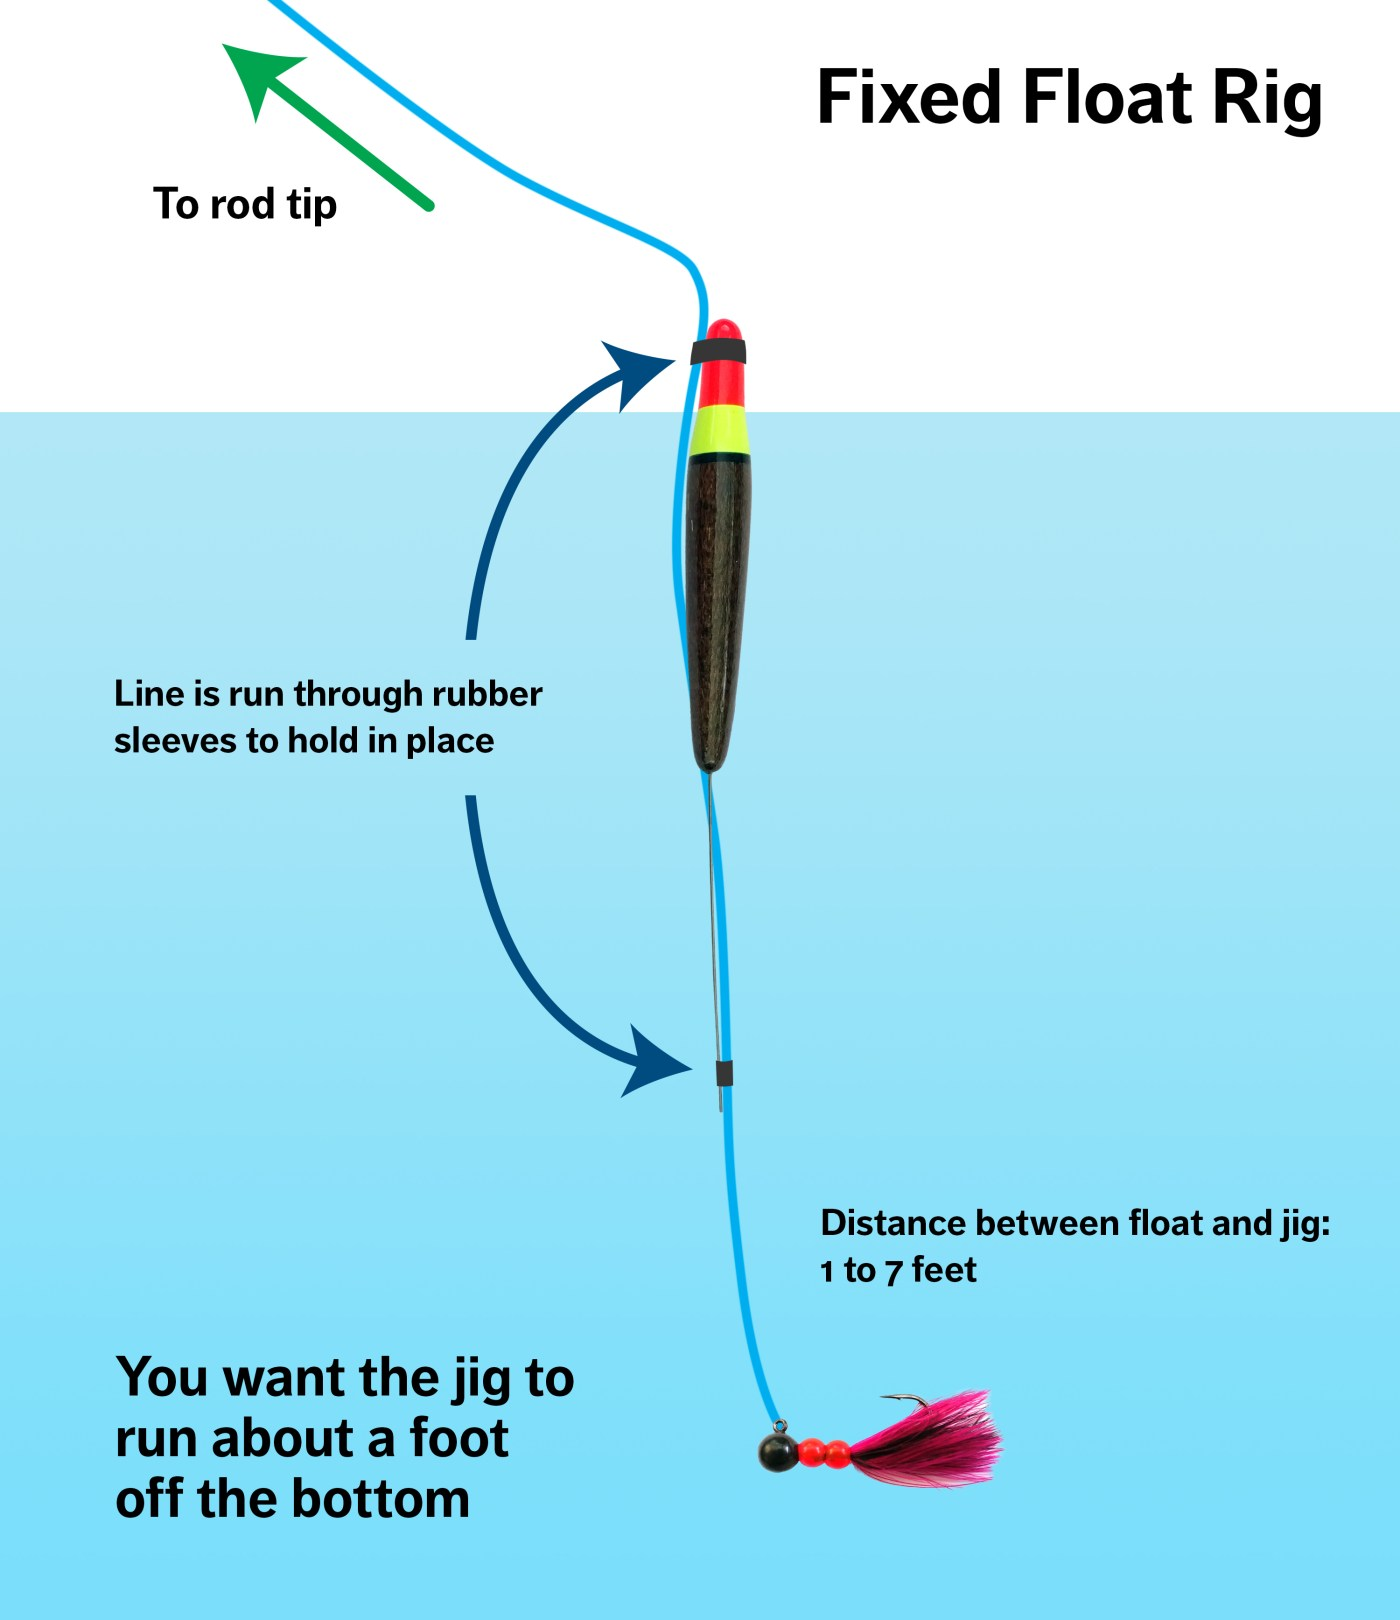 Fixed float rig diagram